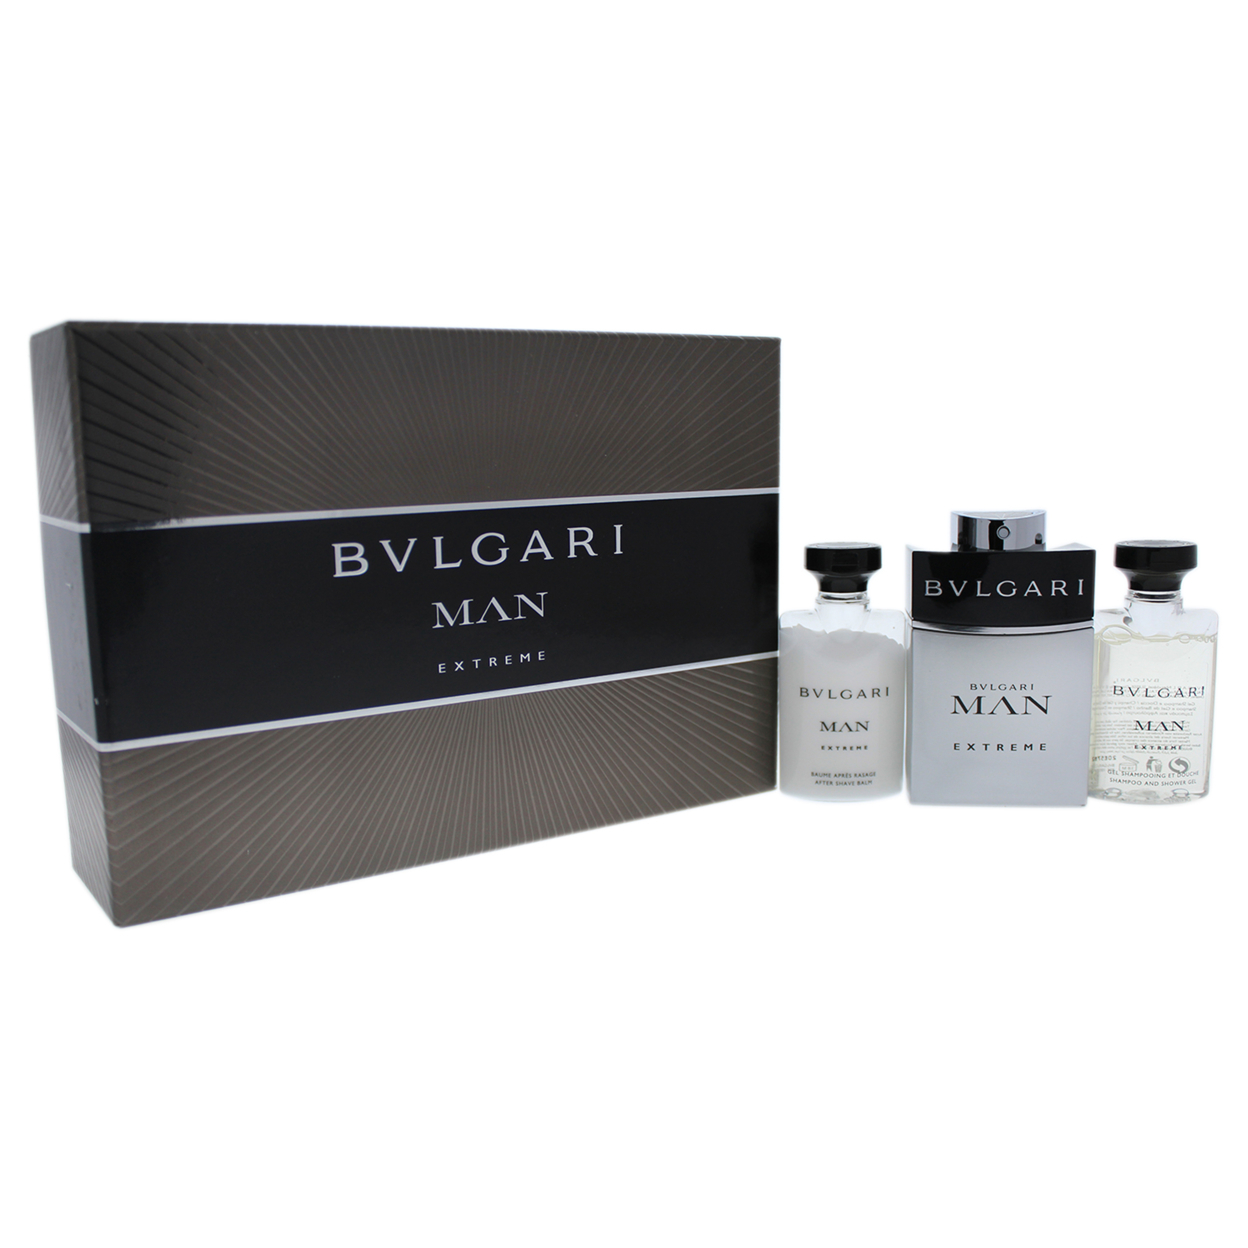 Bvlgari Man Extreme By Bvlgari For Men 3 Pc Gift Set 2oz Edt Spray, 1.35oz After Shave Balm, 1.3oz Shampoo And Shower Gel